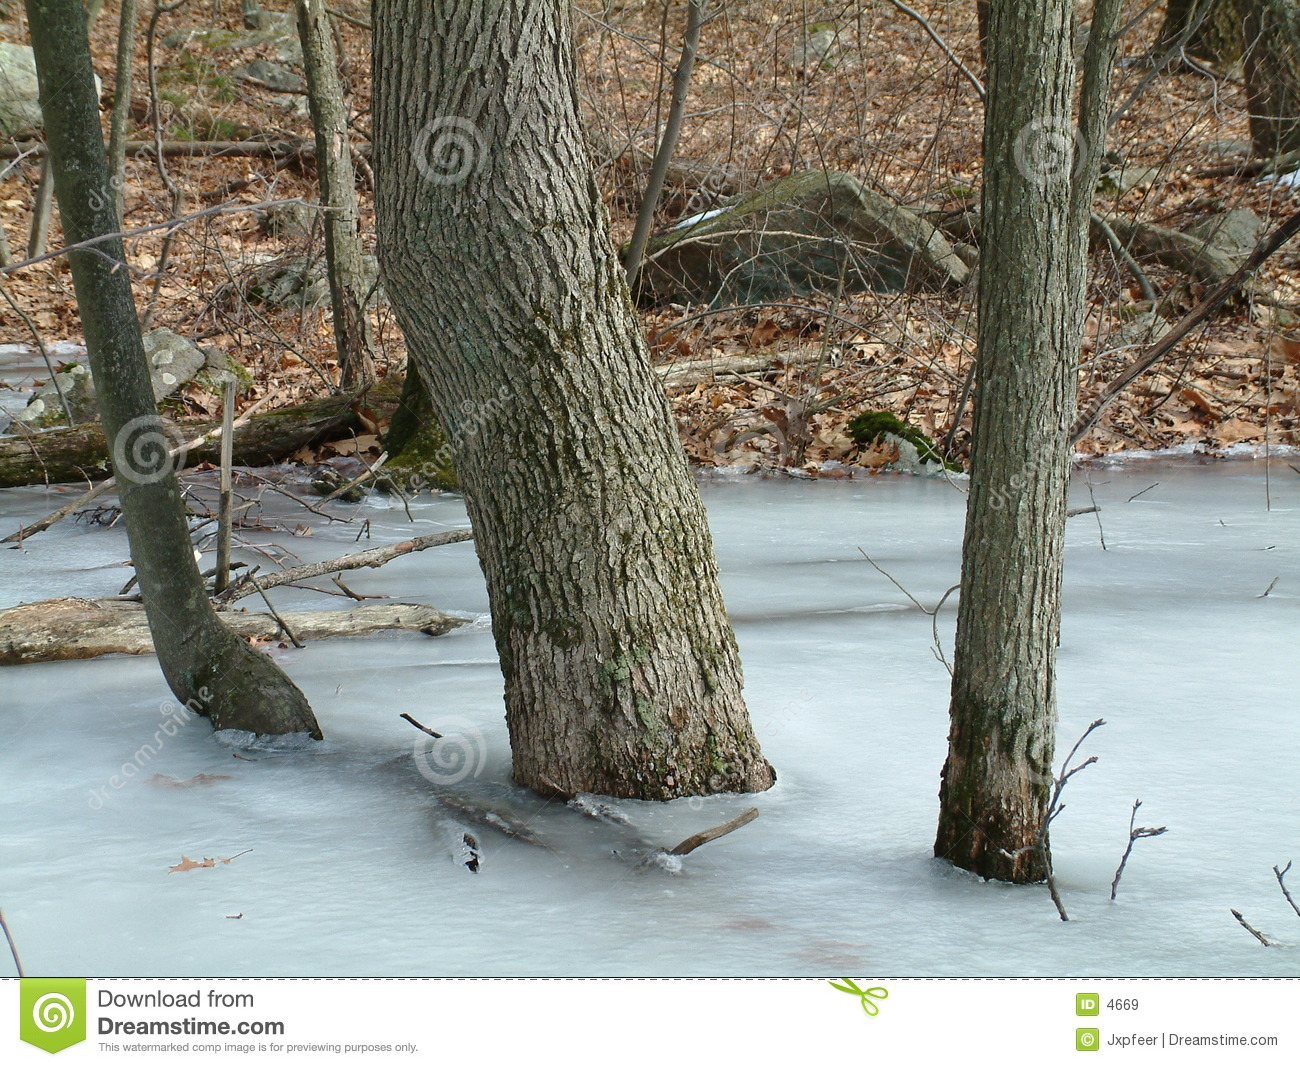 Trees in the ice